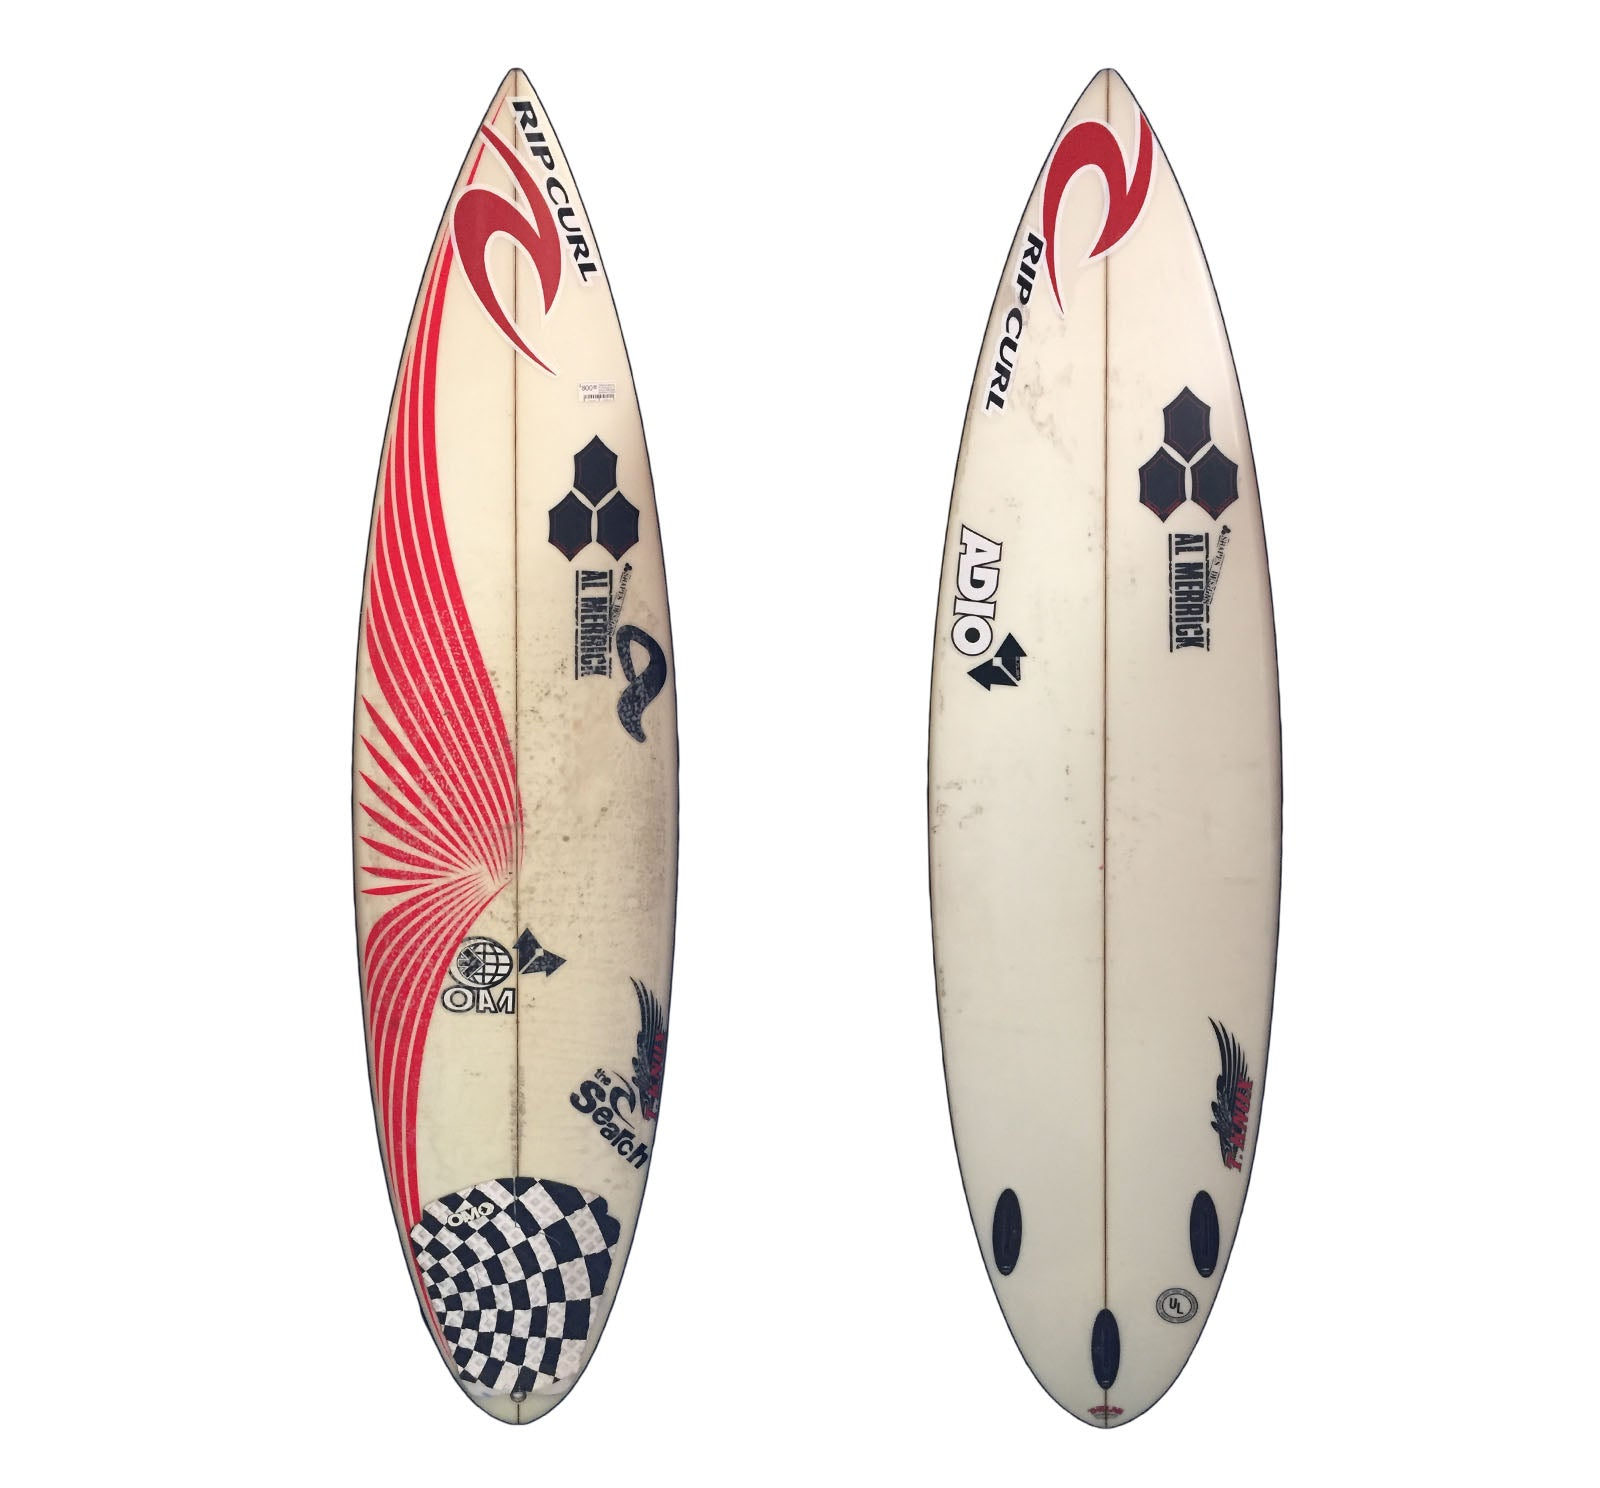 Channel Islands Fort Knox 6'4 Collector Surfboard